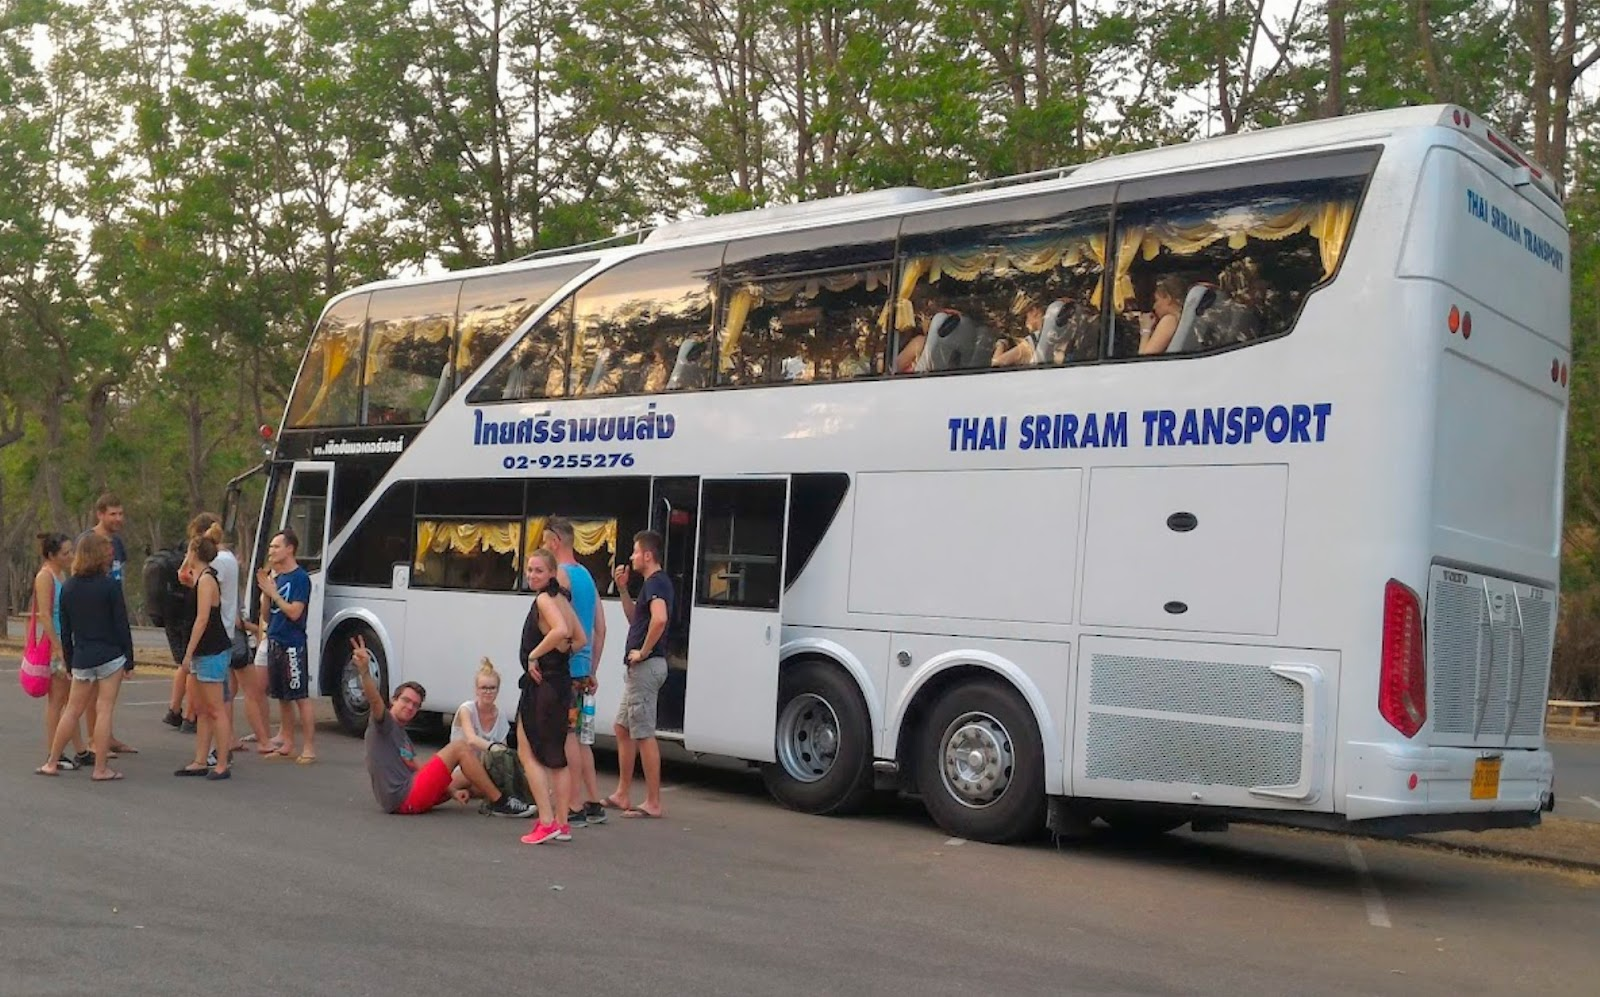 Travel from Bangkok to Chiang Mai by VIP coach